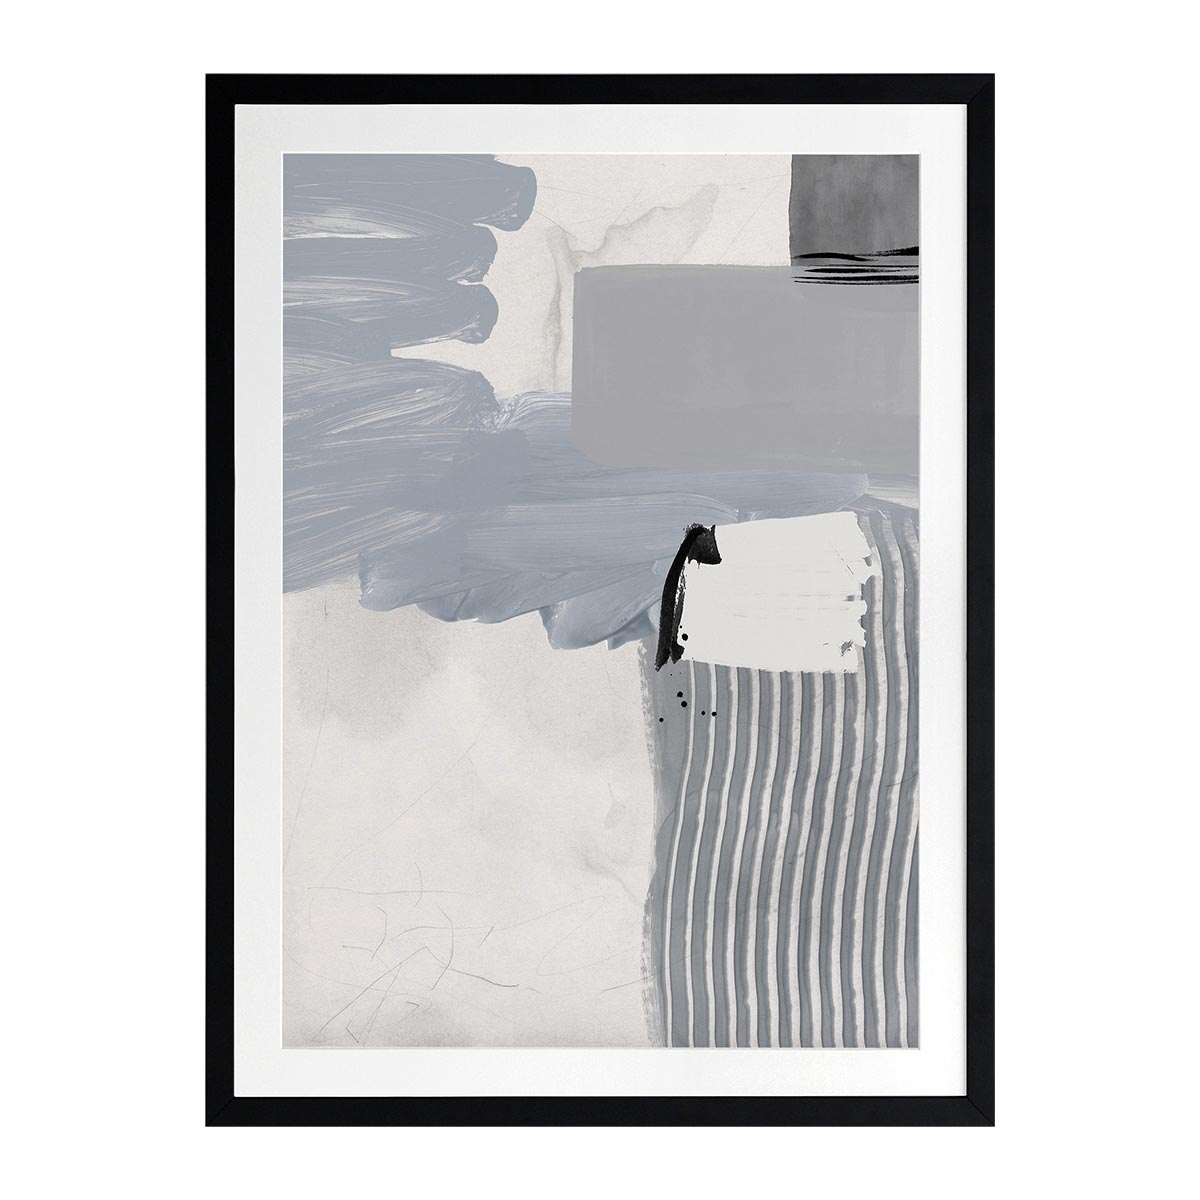 CONCRETE DECISION III FRAMED PRINT in 84 x 105cm